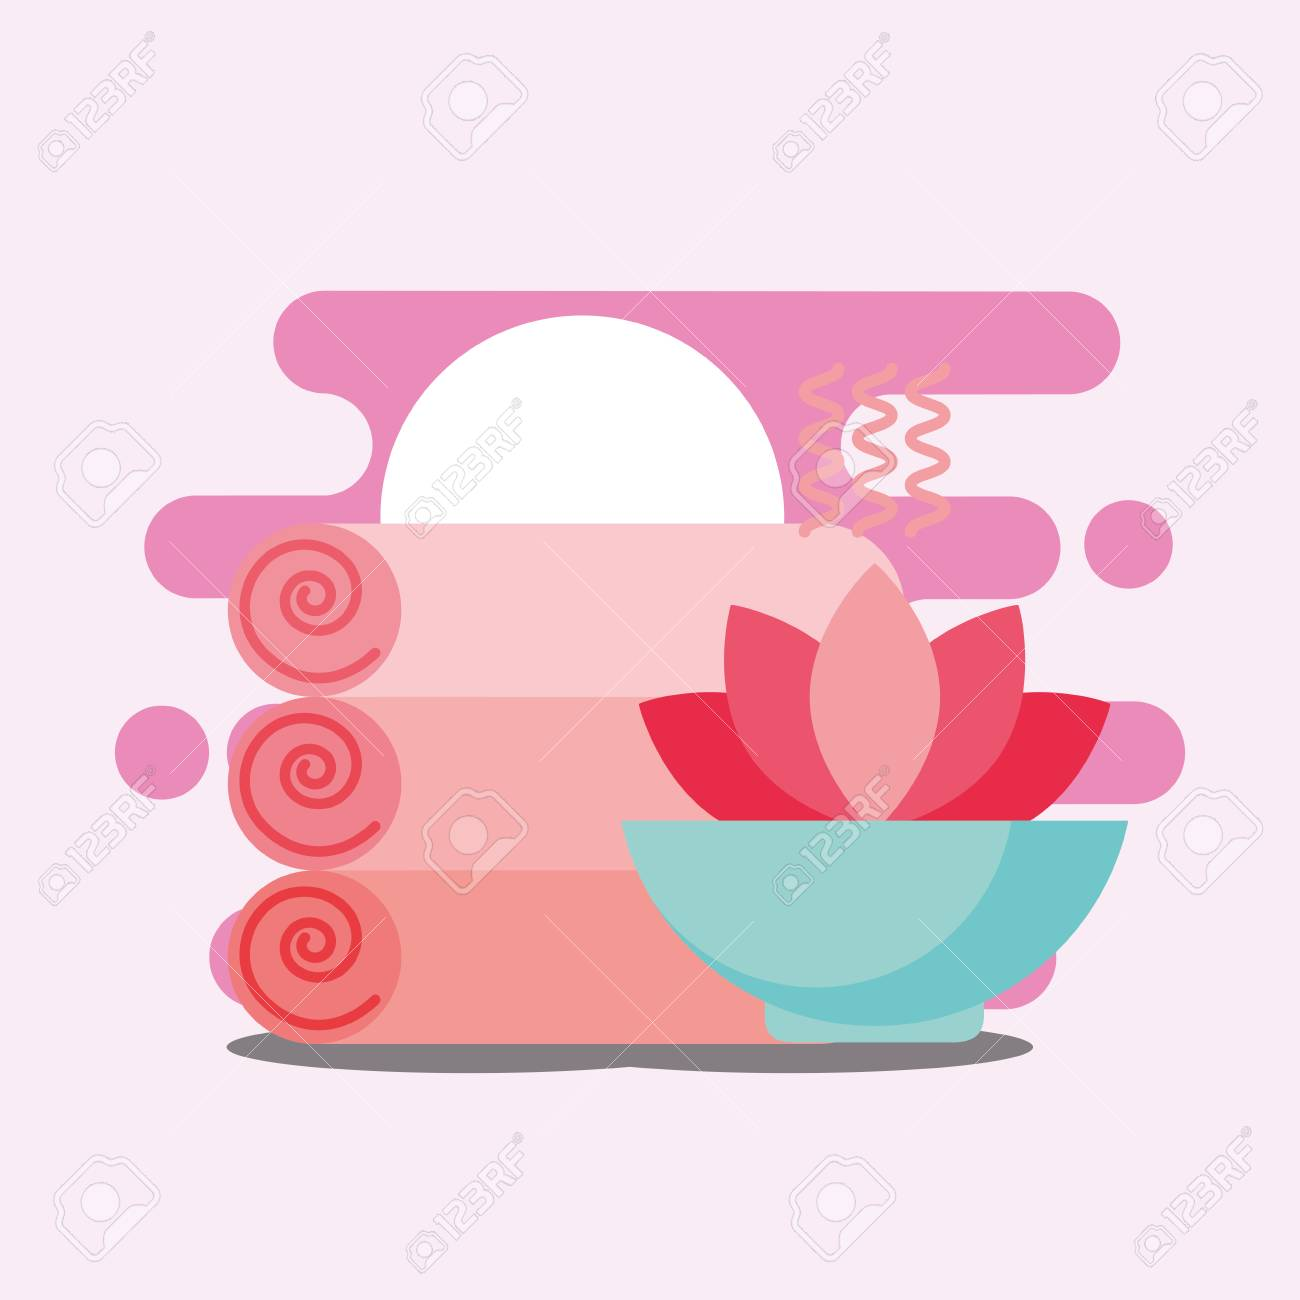 Massage towels and lotus flower spa wellness vector illustration massage towels and lotus flower spa wellness vector illustration stock vector 102999288 izmirmasajfo